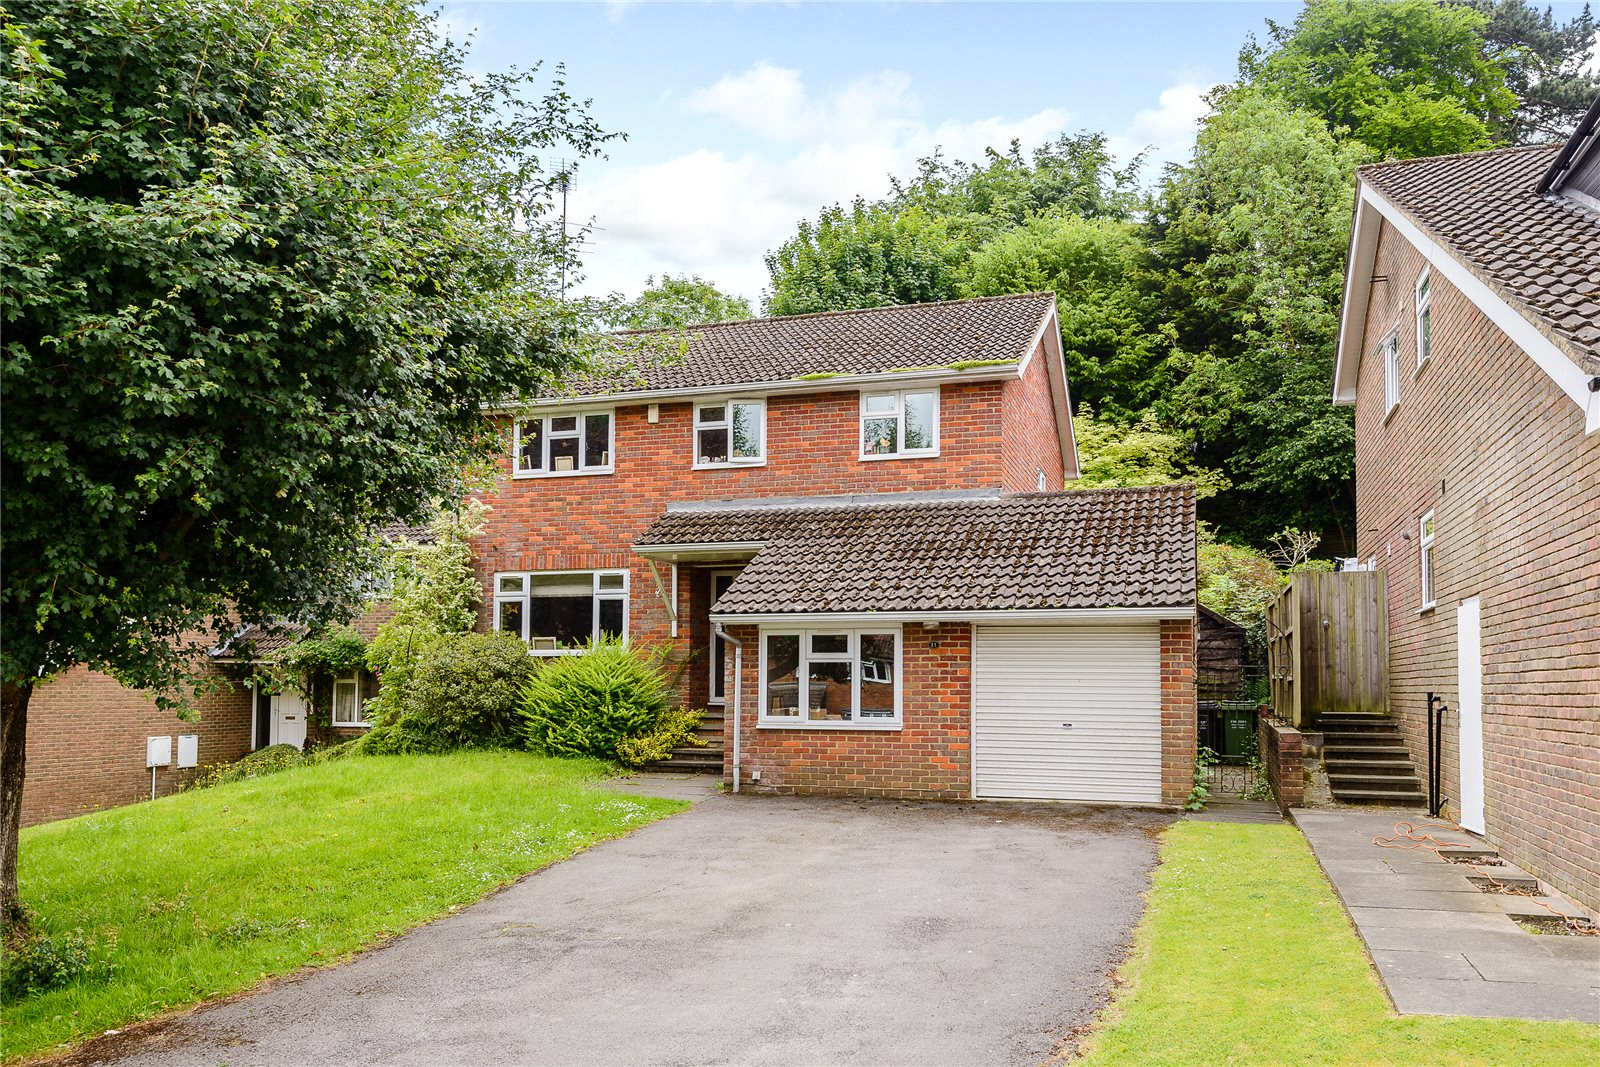 Casa Unifamiliar por un Venta en Ashlea Road, Chalfont St Peter, Gerrards Cross, Buckinghamshire, SL9 Gerrards Cross, Inglaterra